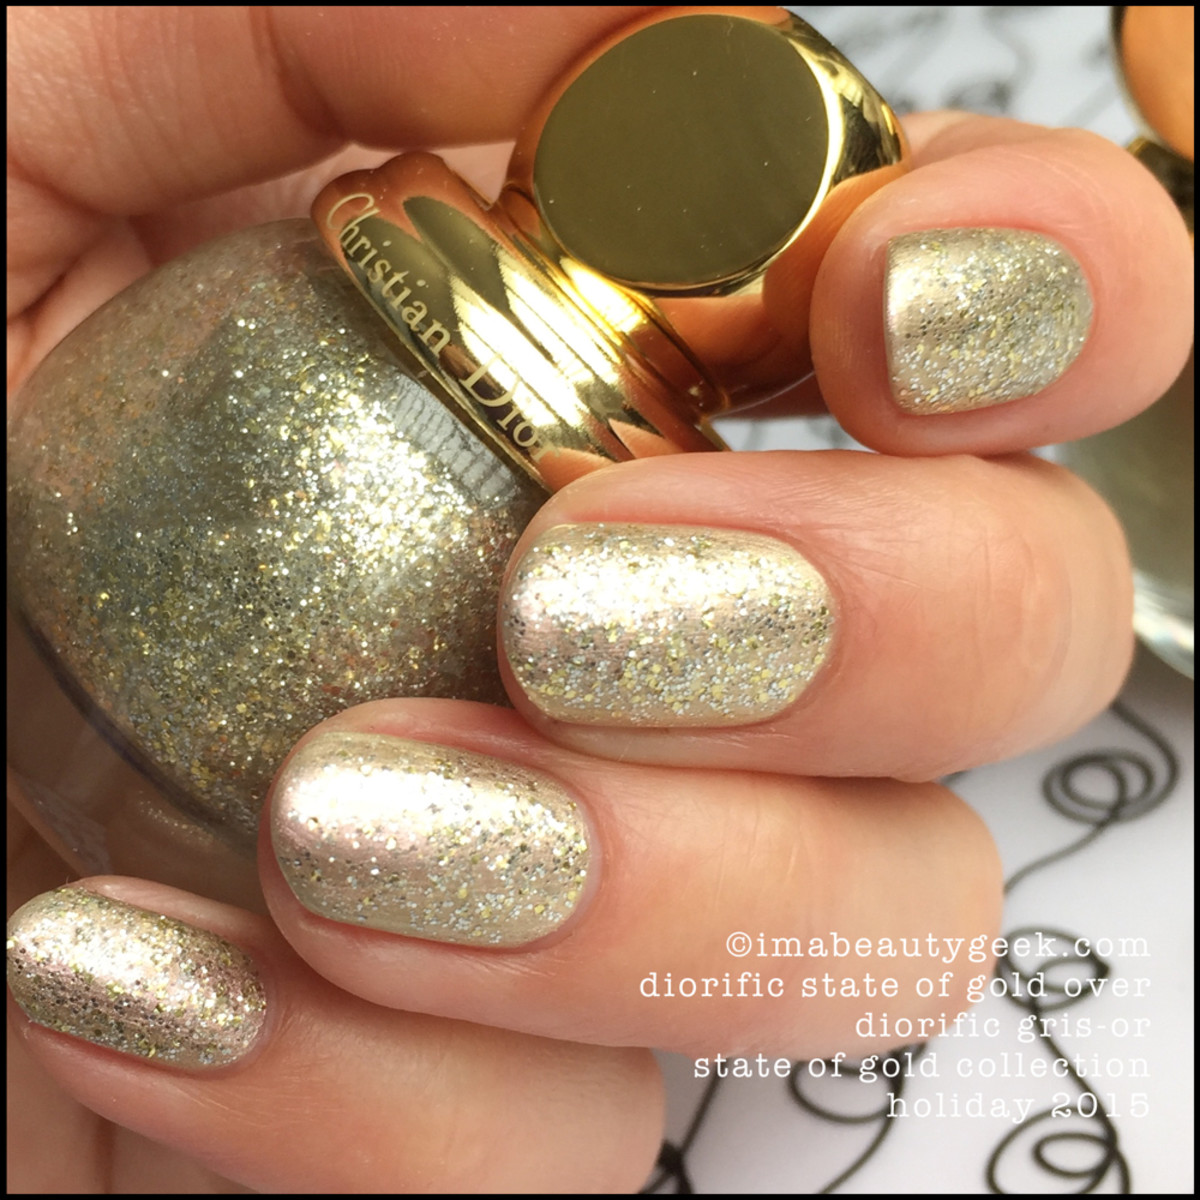 Diorific State of Gold over Dior Gris Or_Diorific Vernis State of Gold Collection Holiday 2015